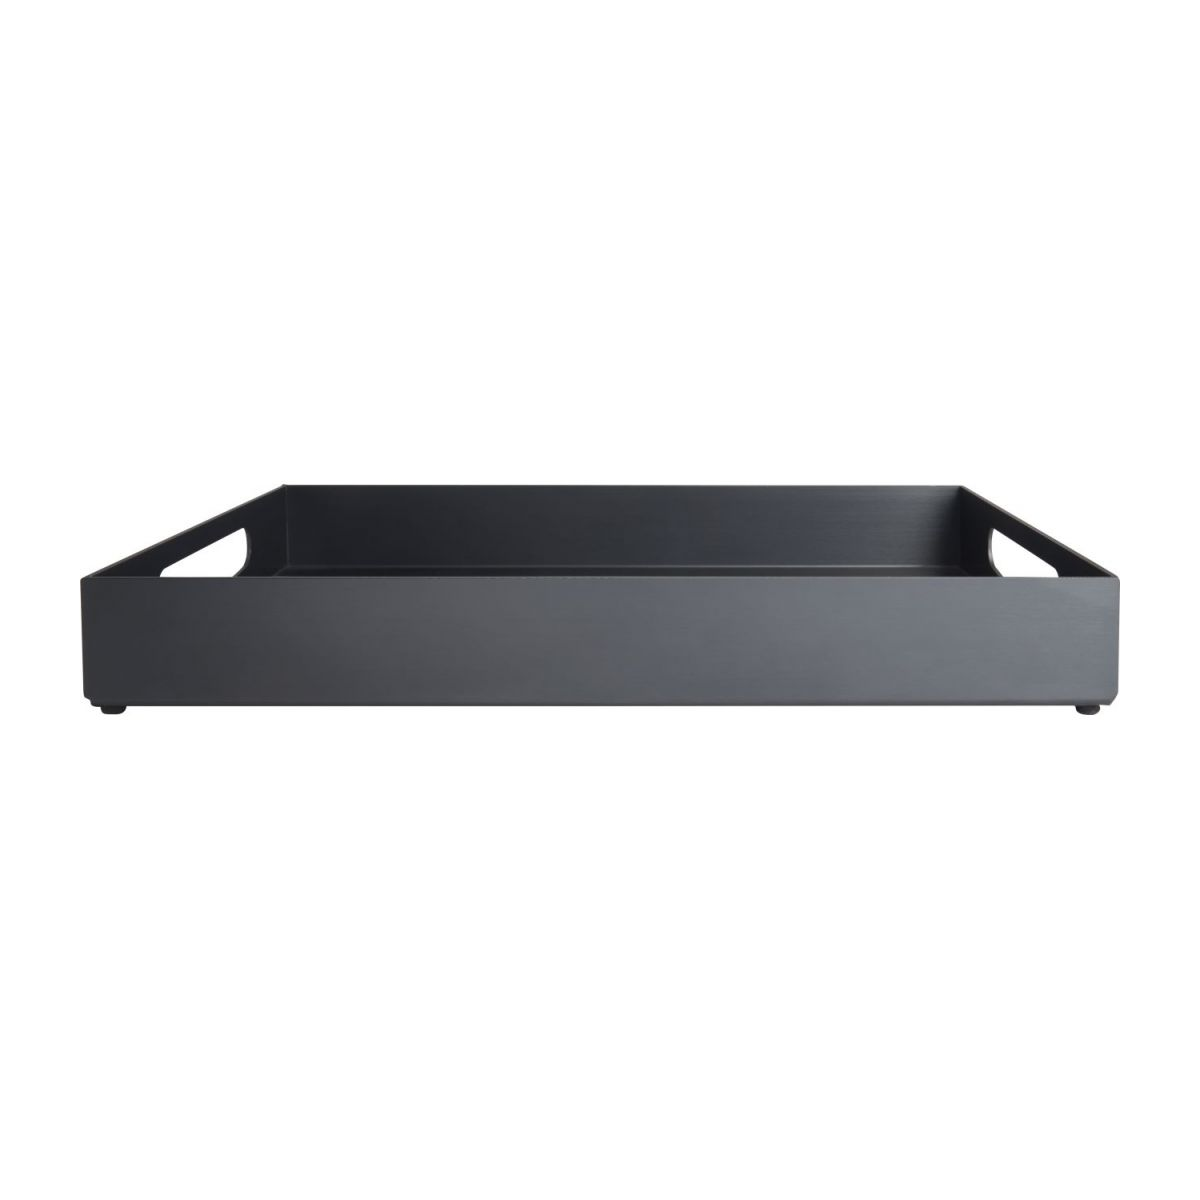 Tray in aluminium 40x25cm, black n°2